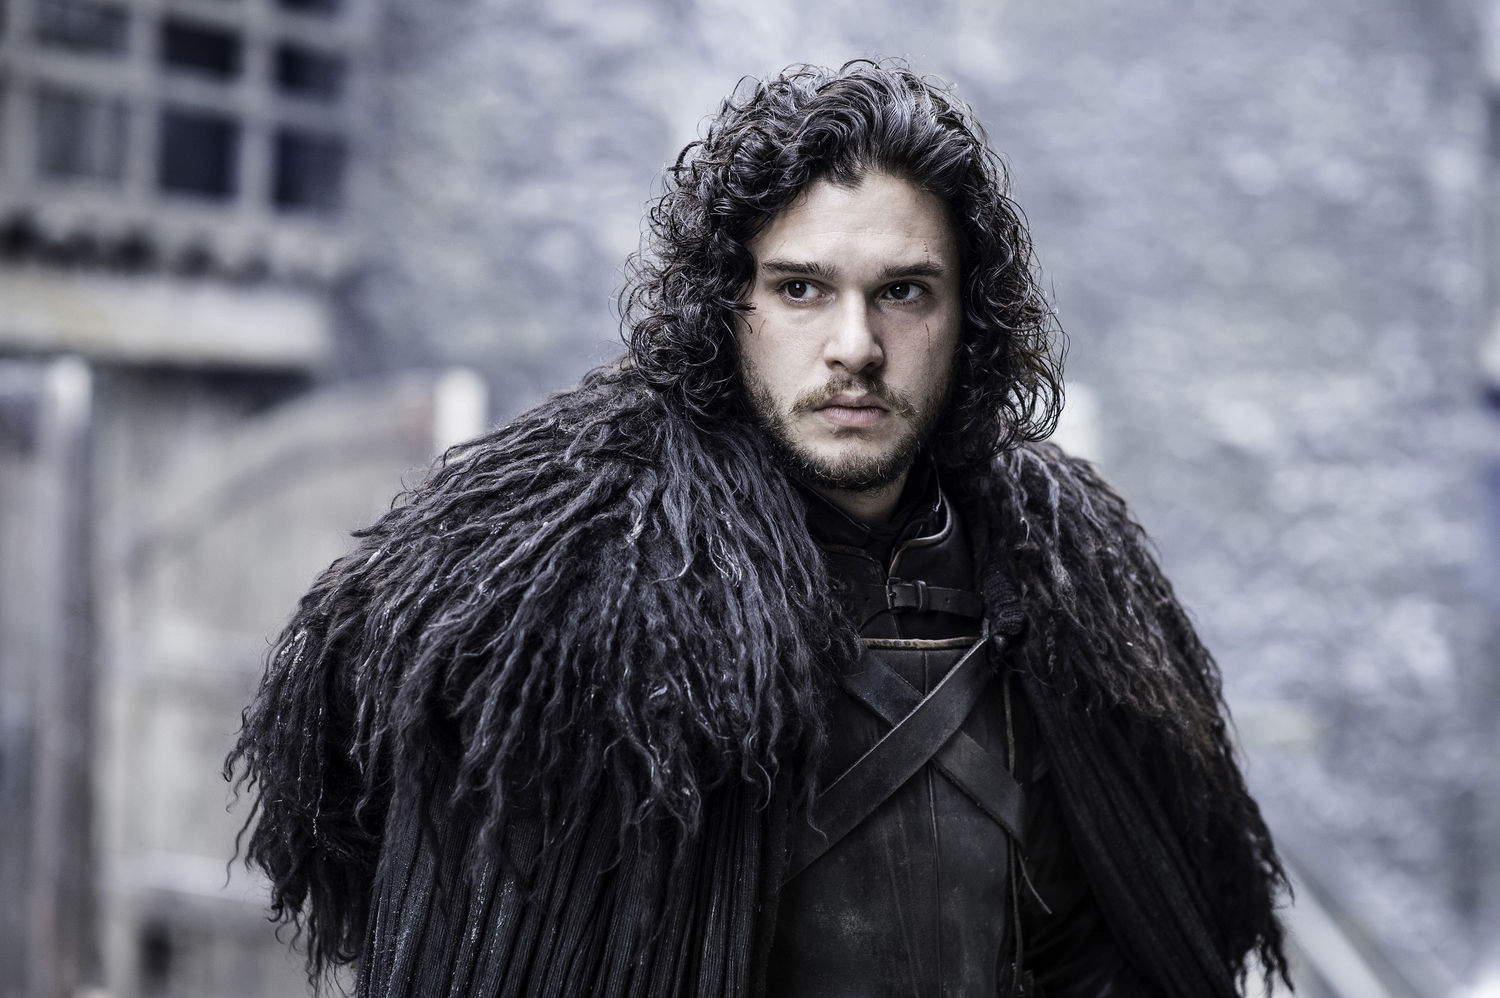 'Game of Thrones' costumes came from ... IKEA?